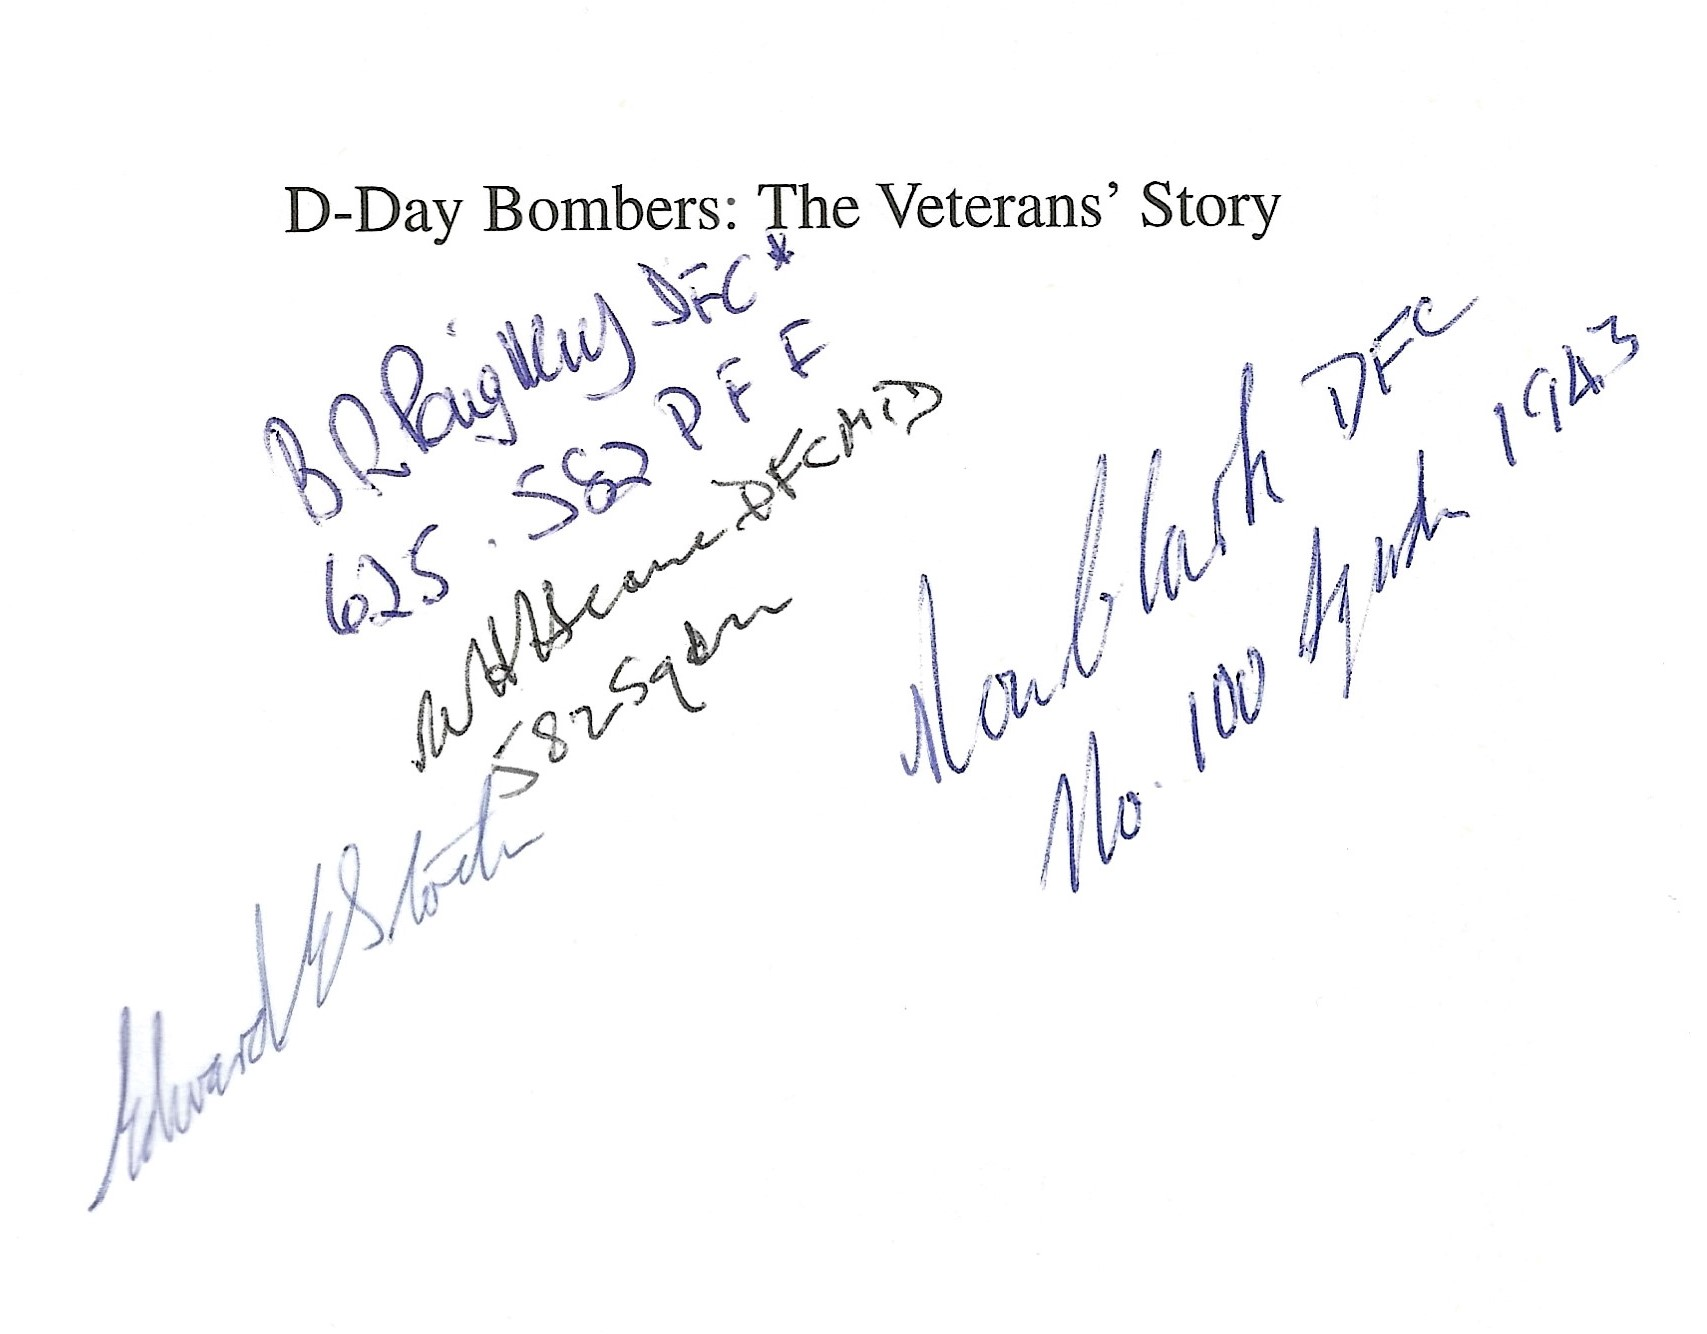 Stephen Darlow. D Day Bombers: The Veterans Story. RAF bomber Command and the US eighth air force - Image 2 of 2